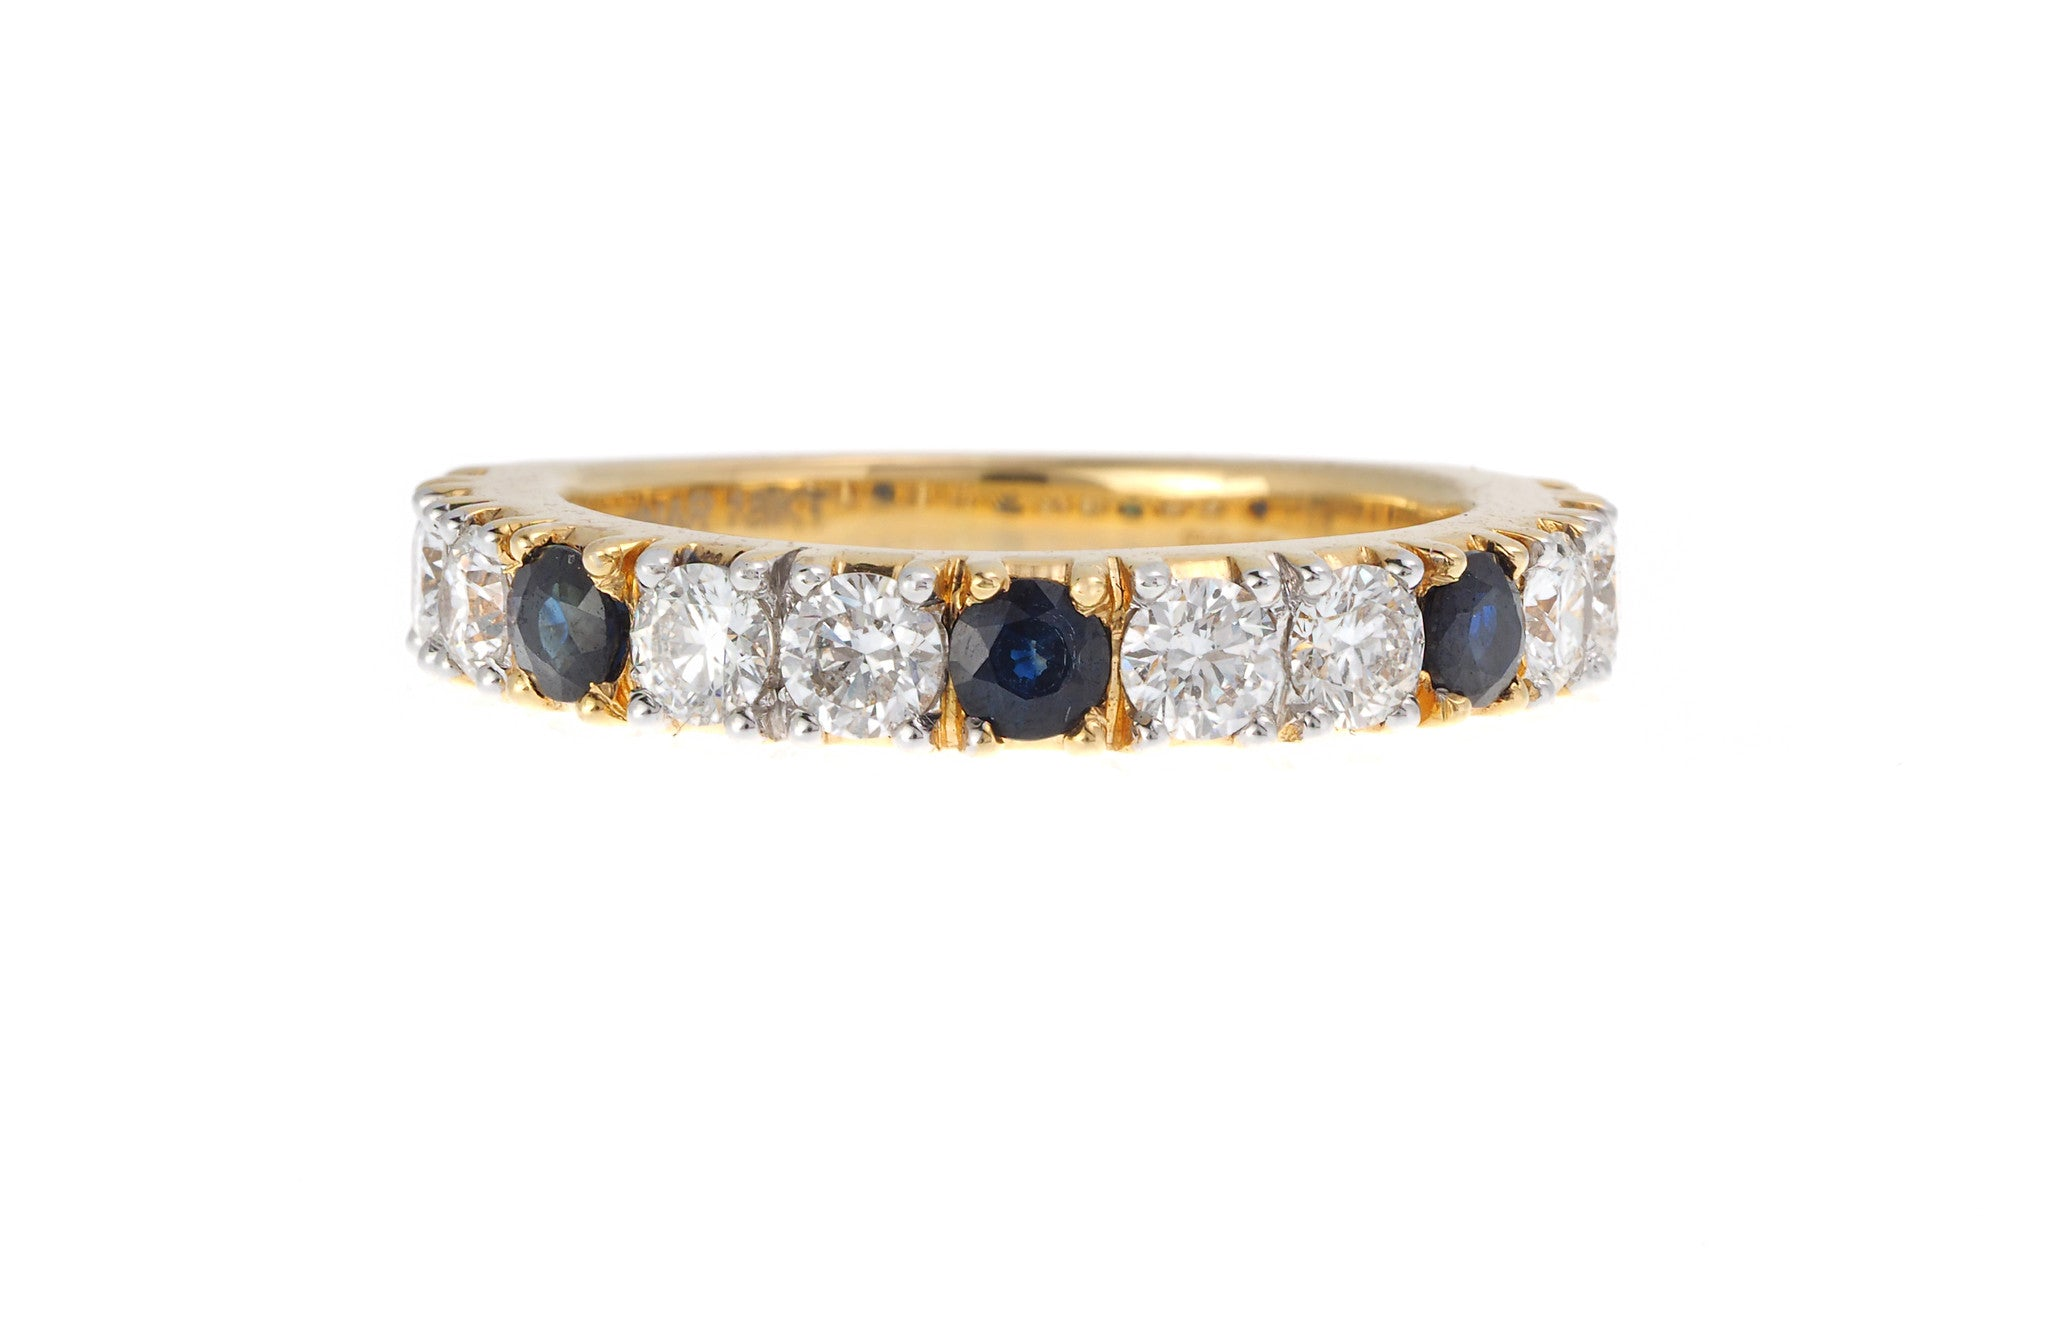 18ct Yellow Gold Blue Sapphire & Diamond Dress Ring, Minar Jewellers - 2